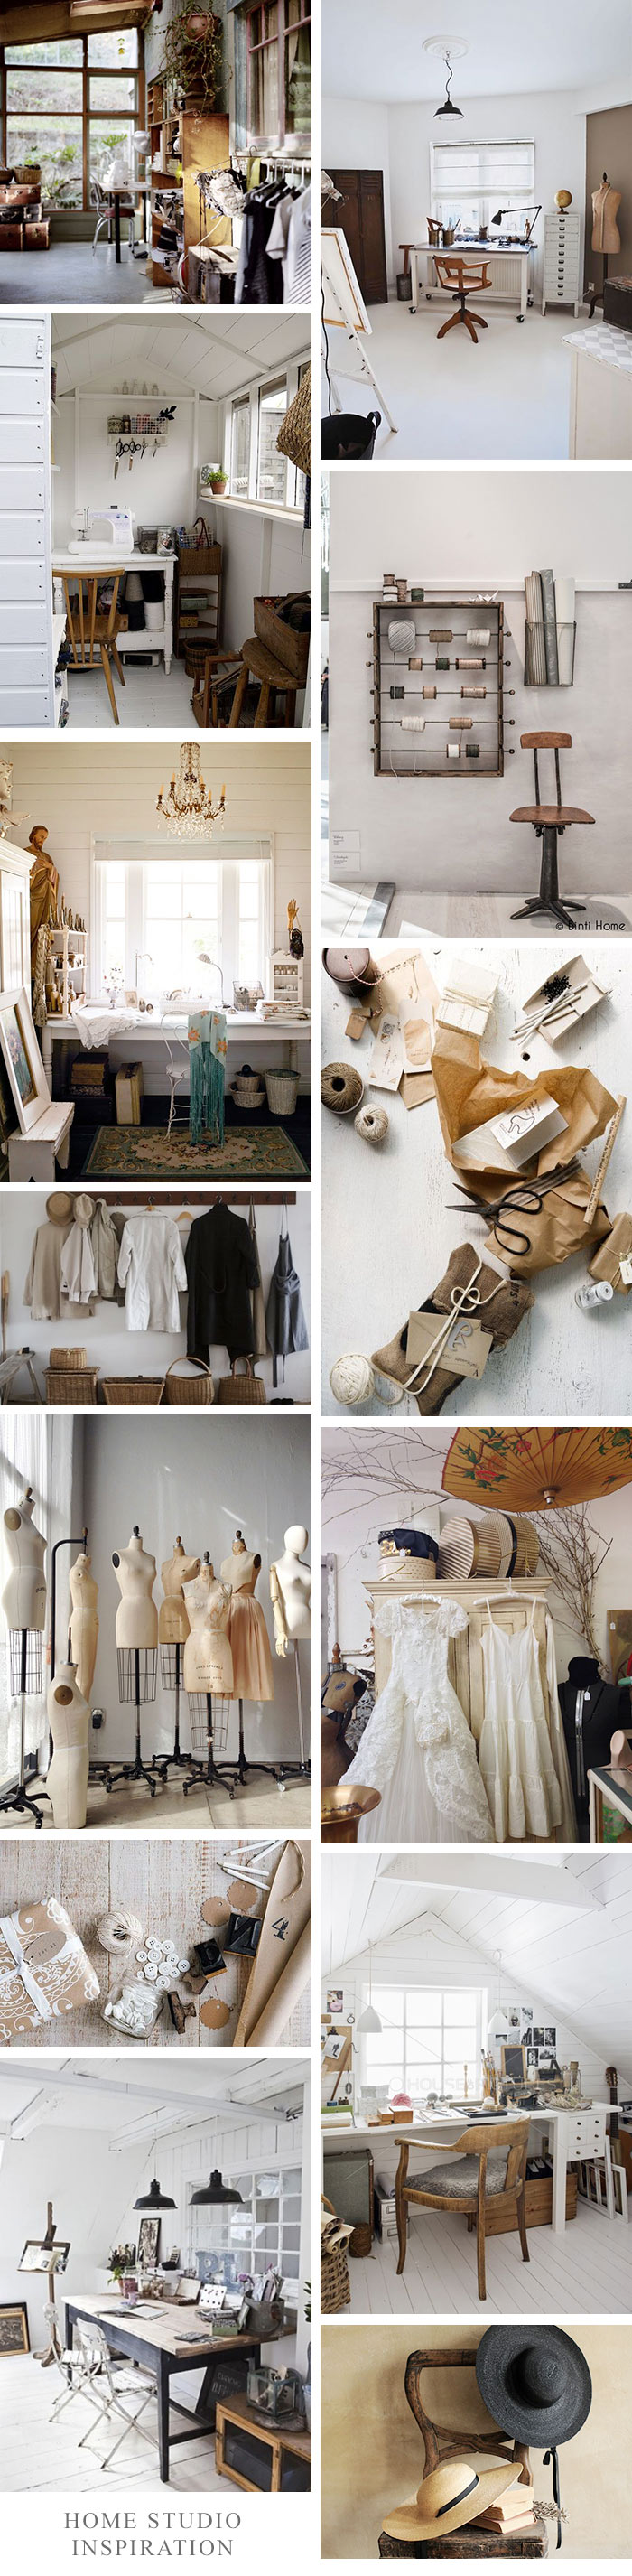 Adored Vintage Home Studio Inspiration